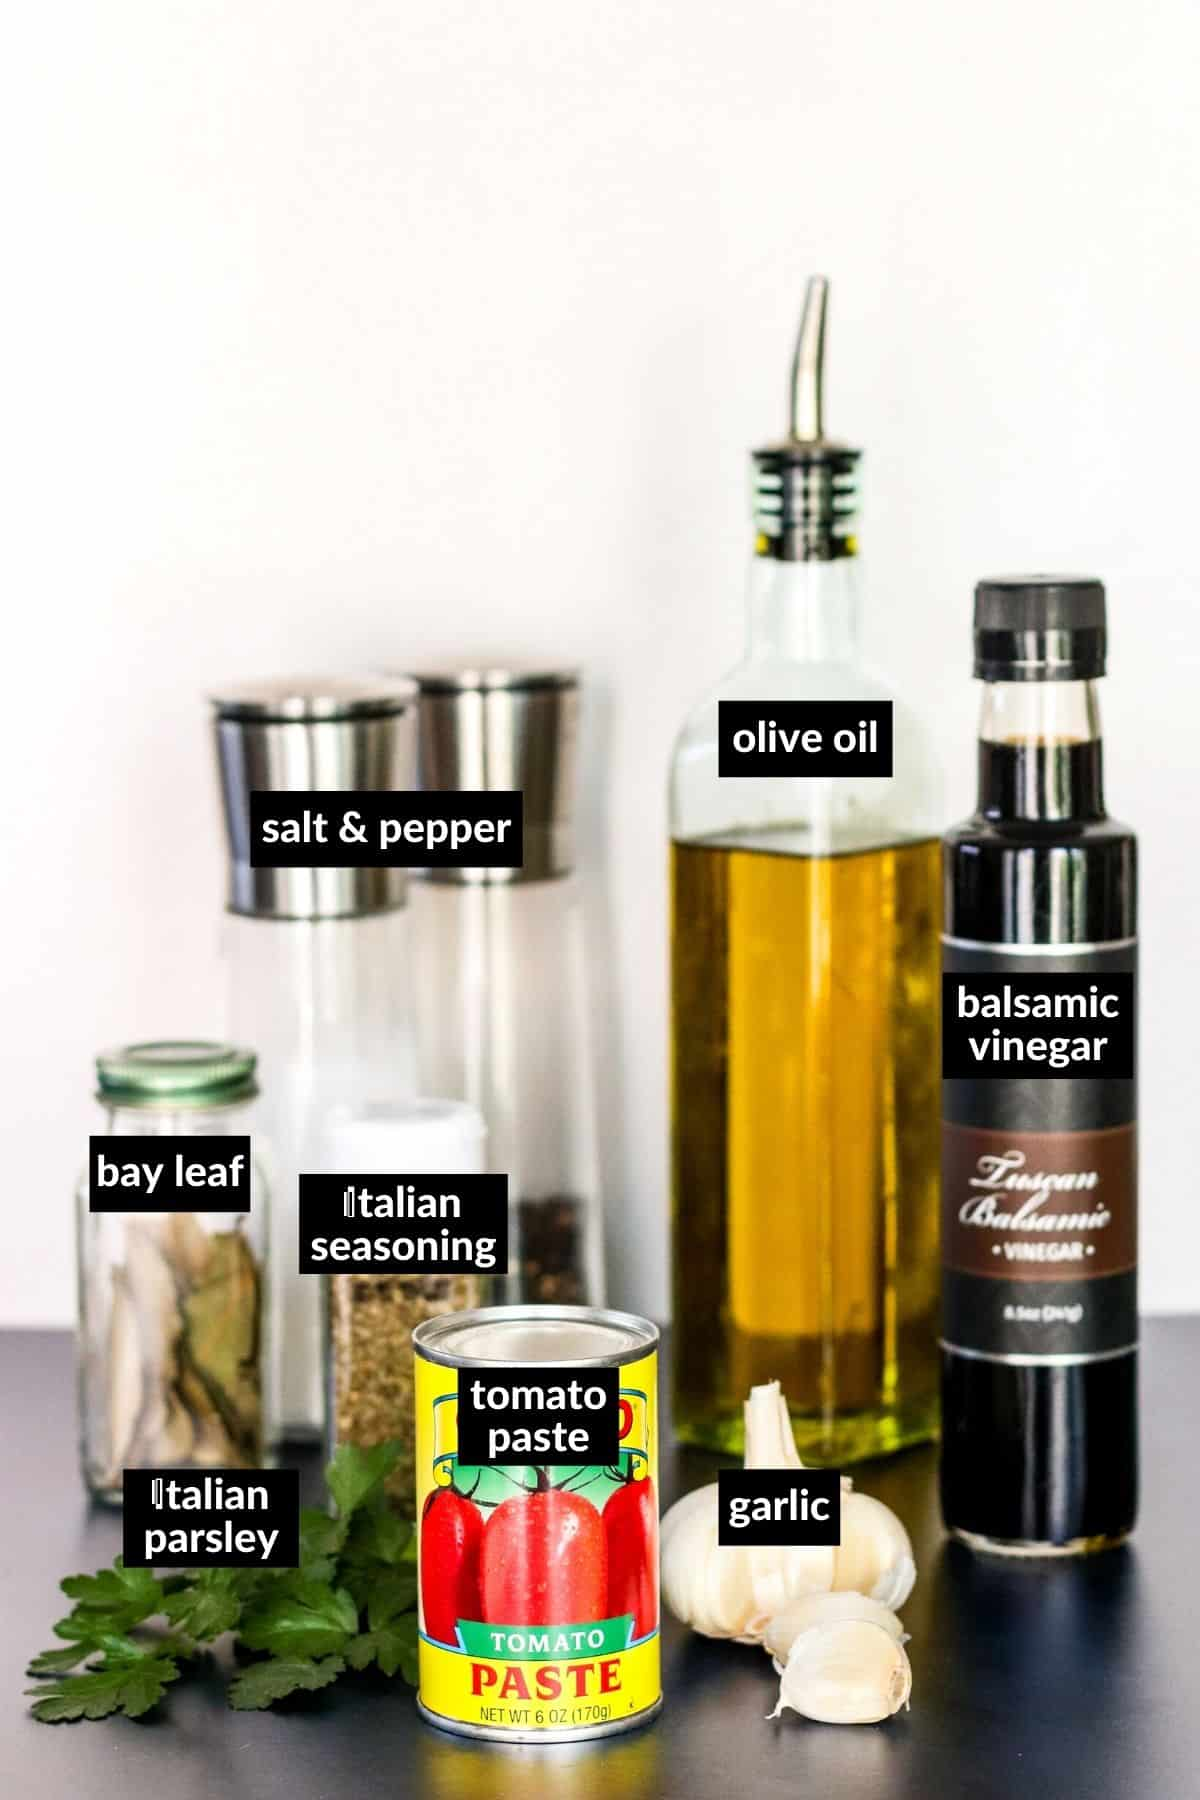 Labeled ingredients needed to make this recipe